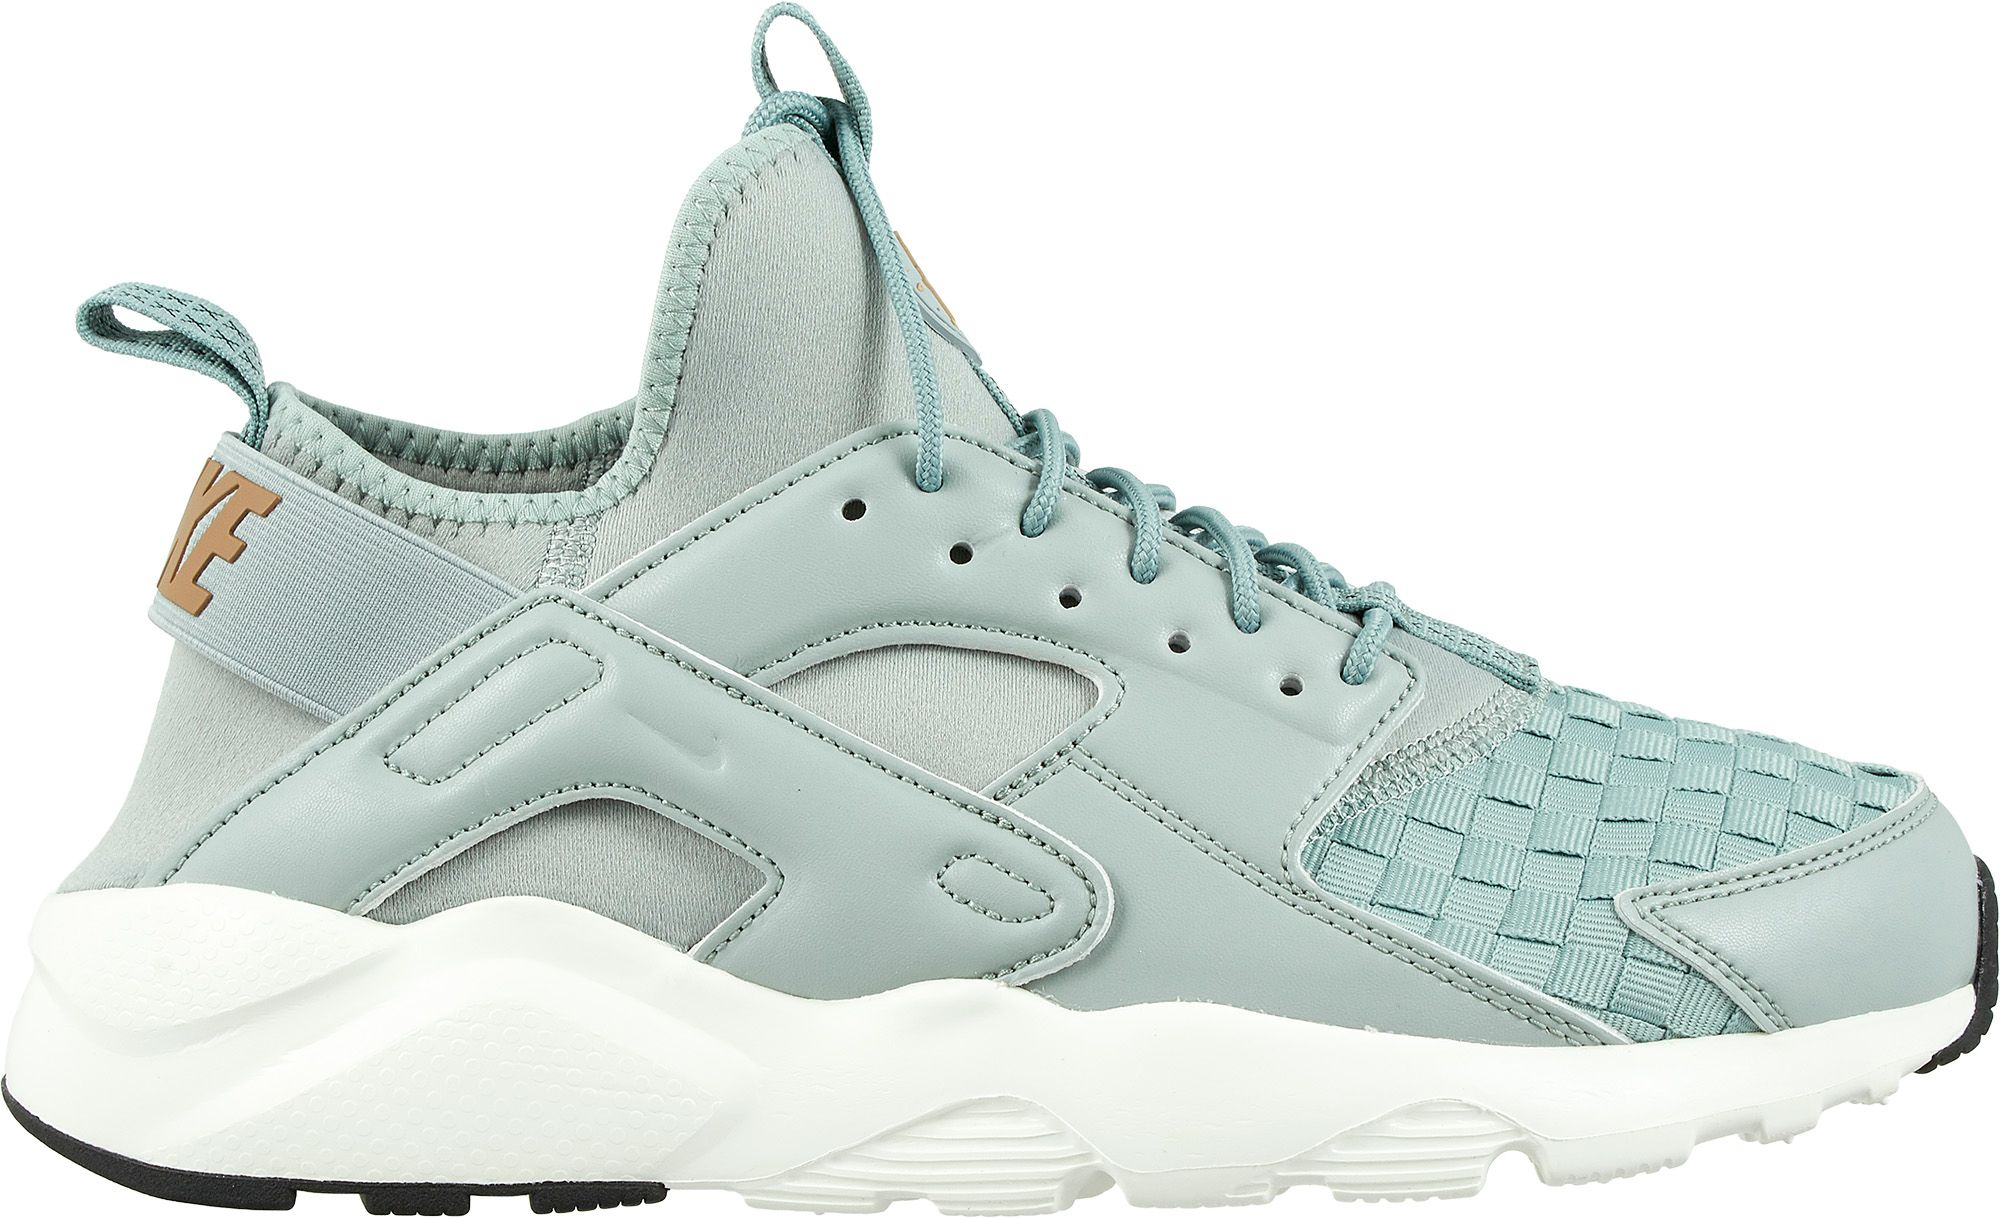 9b33e57d17e5b Nike Men's Air Huarache Run Ultra SE Shoes | DICK'S Sporting ...